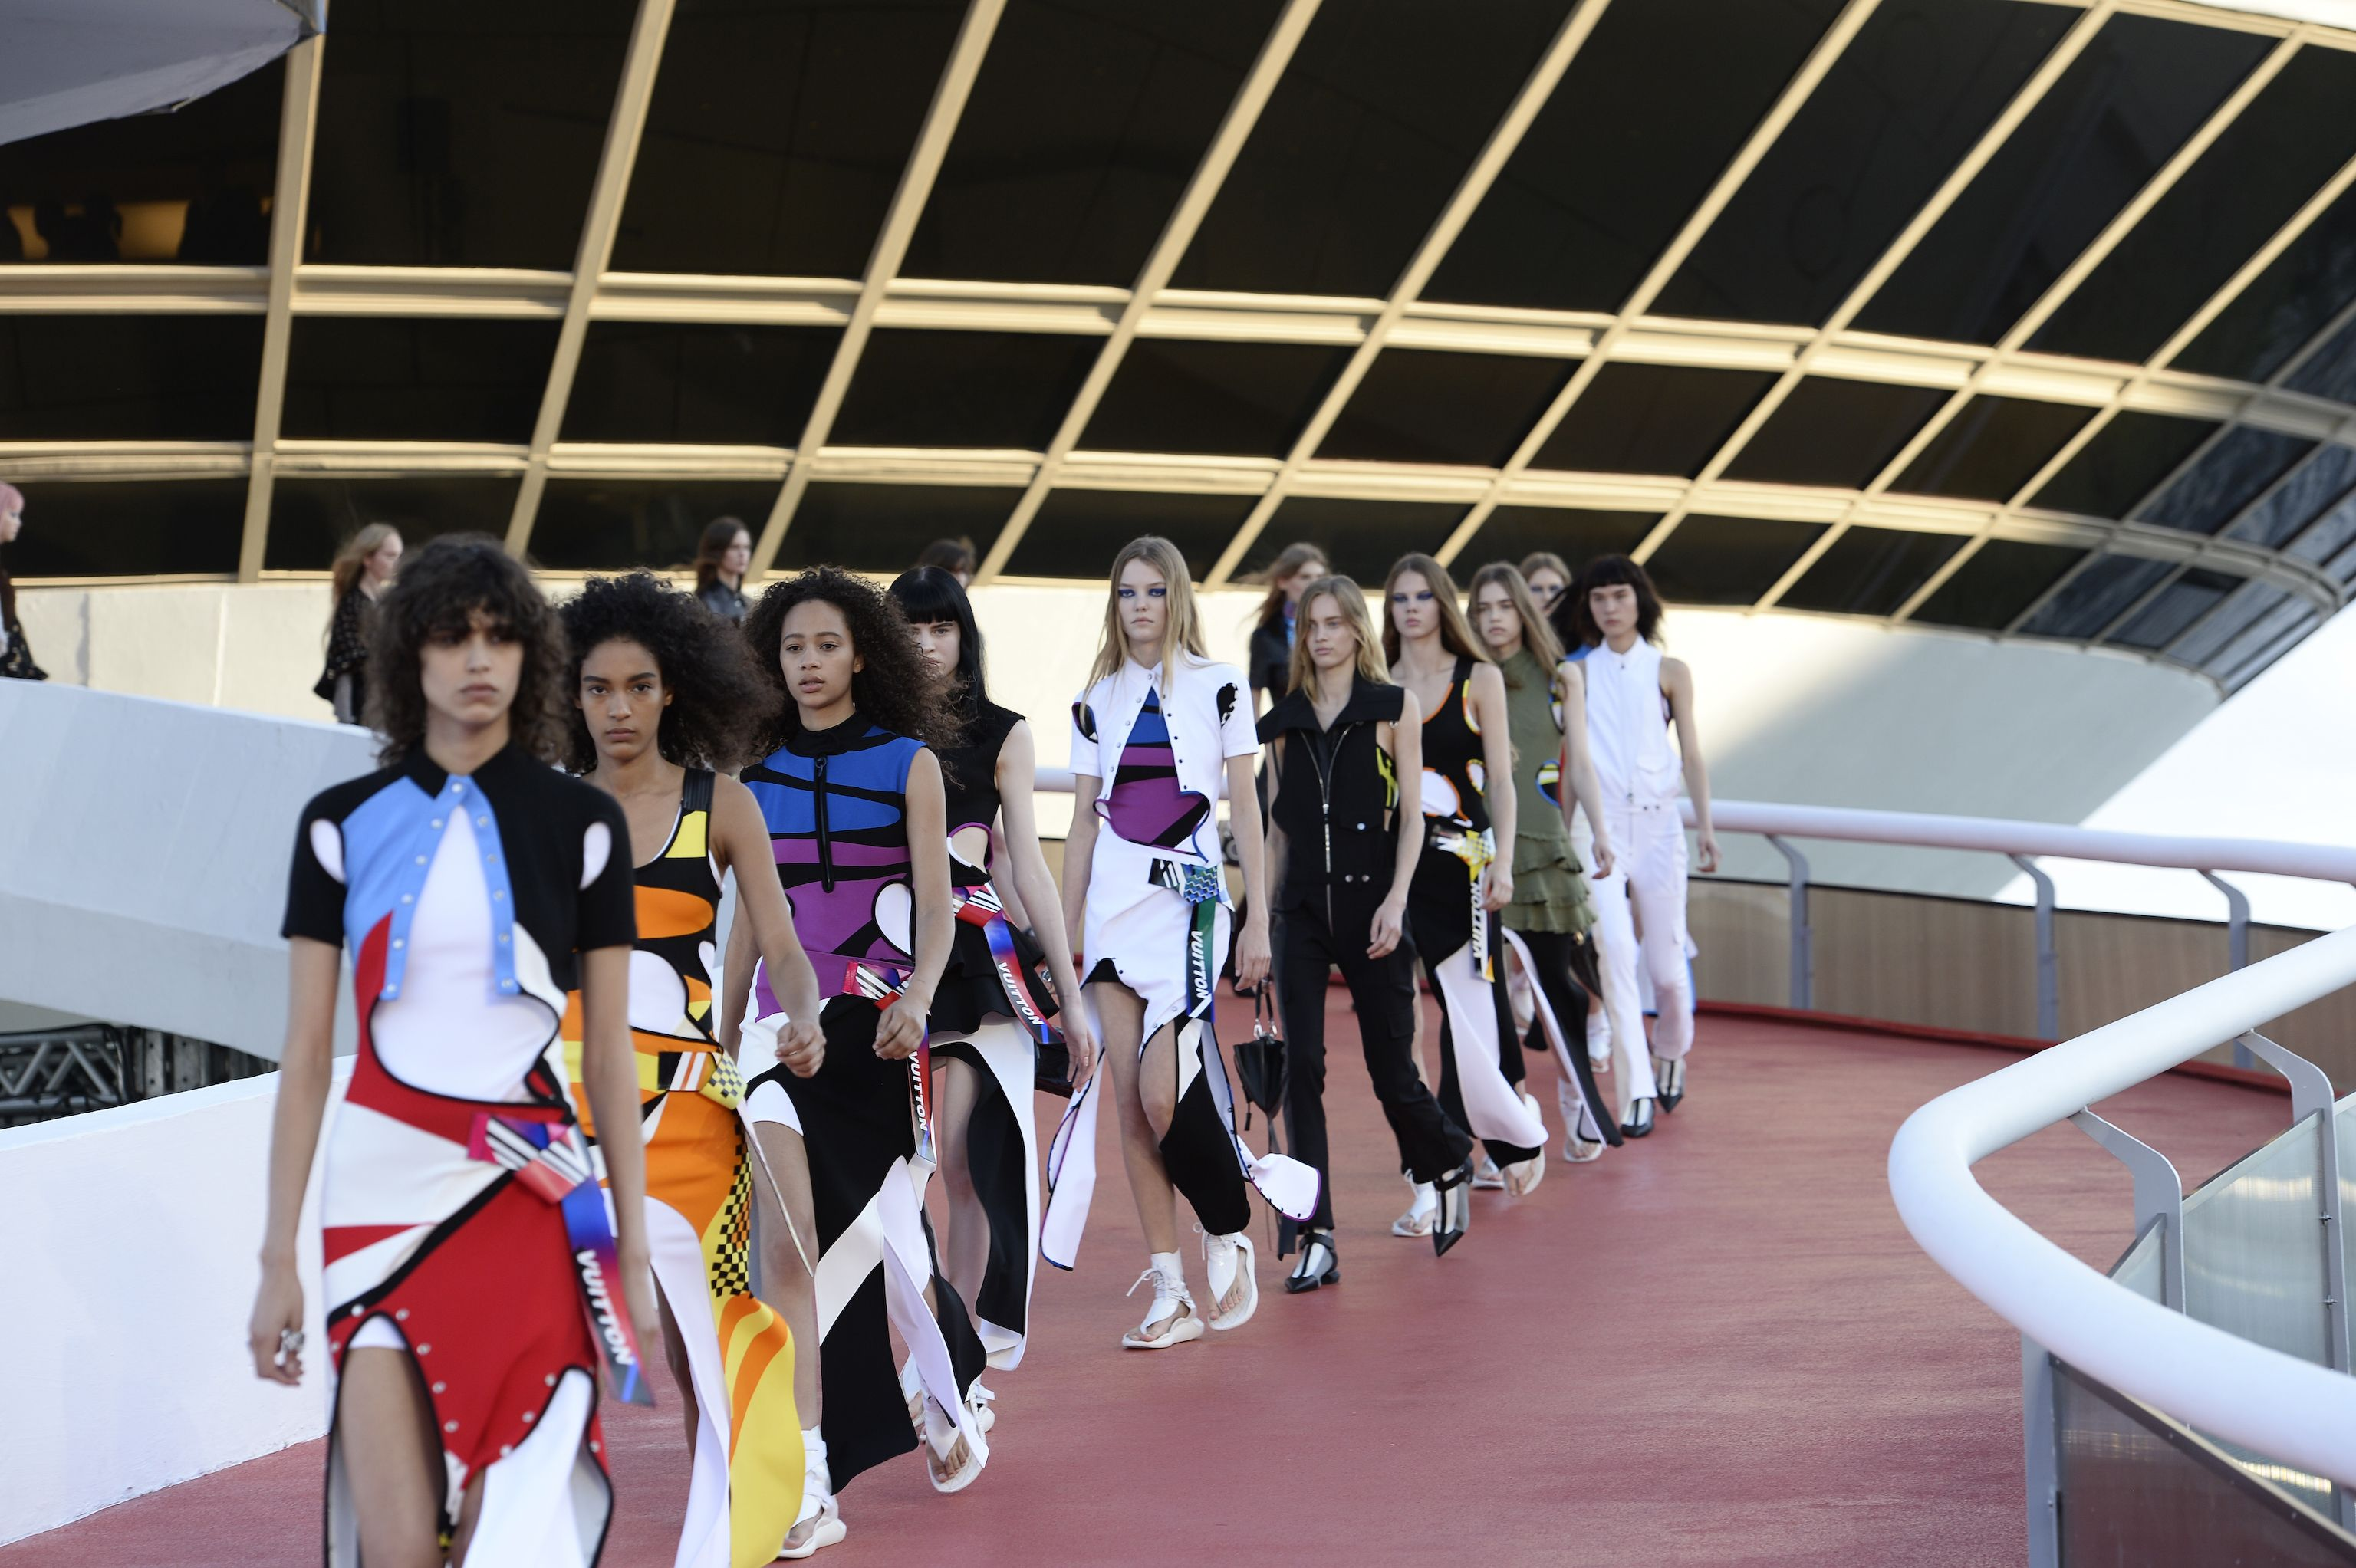 Watch the Louis Vuitton Cruise 2020 Show at JFK Airport